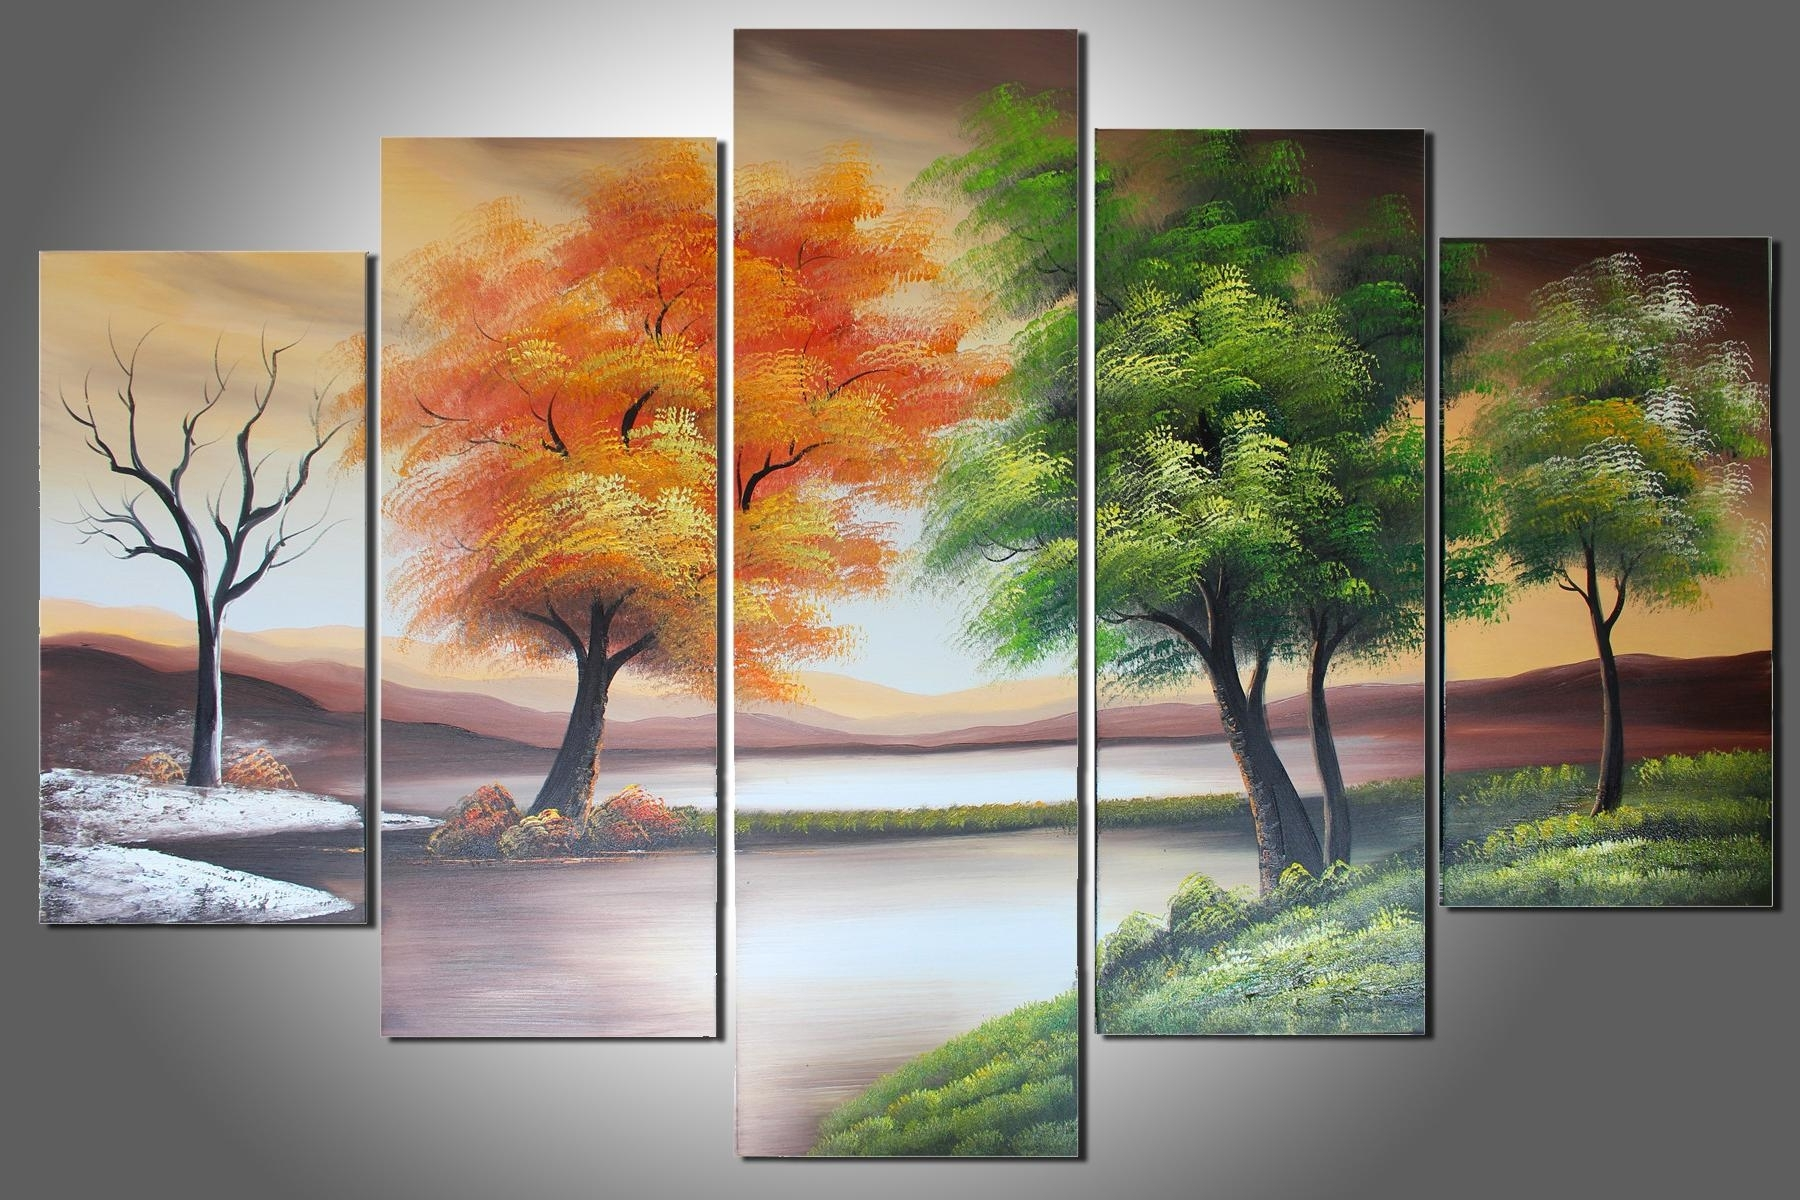 [%100% Hand Painted Four Seasons Trees Abstract Oil Painting Wall Pertaining To Recent Five Piece Wall Art|Five Piece Wall Art Inside Most Up To Date 100% Hand Painted Four Seasons Trees Abstract Oil Painting Wall|2018 Five Piece Wall Art Throughout 100% Hand Painted Four Seasons Trees Abstract Oil Painting Wall|Newest 100% Hand Painted Four Seasons Trees Abstract Oil Painting Wall In Five Piece Wall Art%] (View 1 of 15)